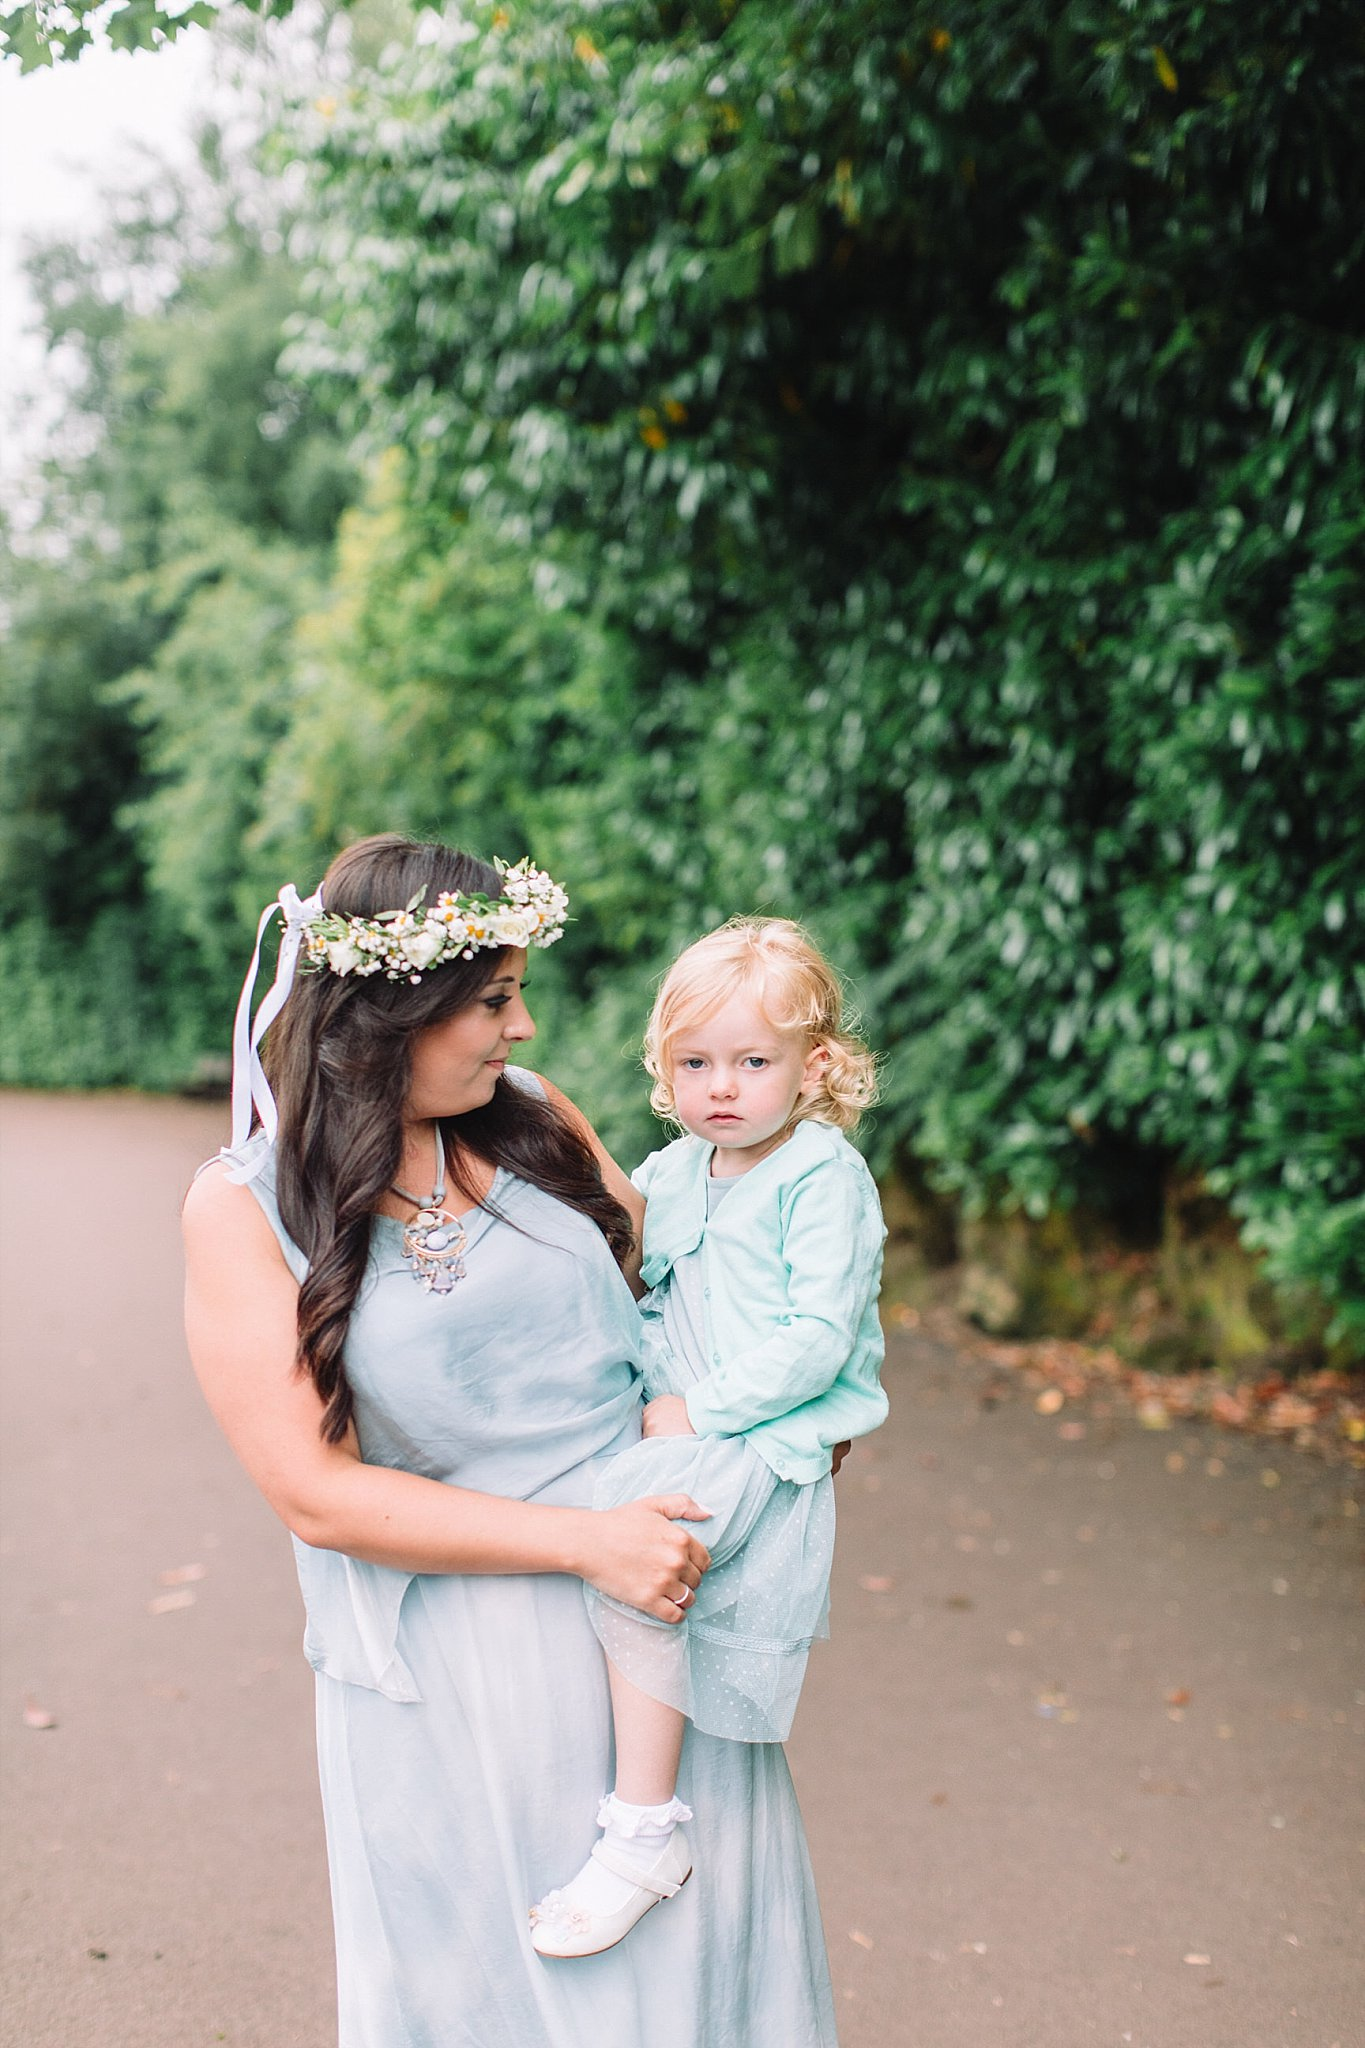 Family photographers Glasgow,Rouken Glen Park,The Gibsons,lifestyle childrens photographers glasgow,lifestyle family photography glasgow,lifestyle family photography: capture those moments,lifestyle family shoot glasgow,roukenglen park,